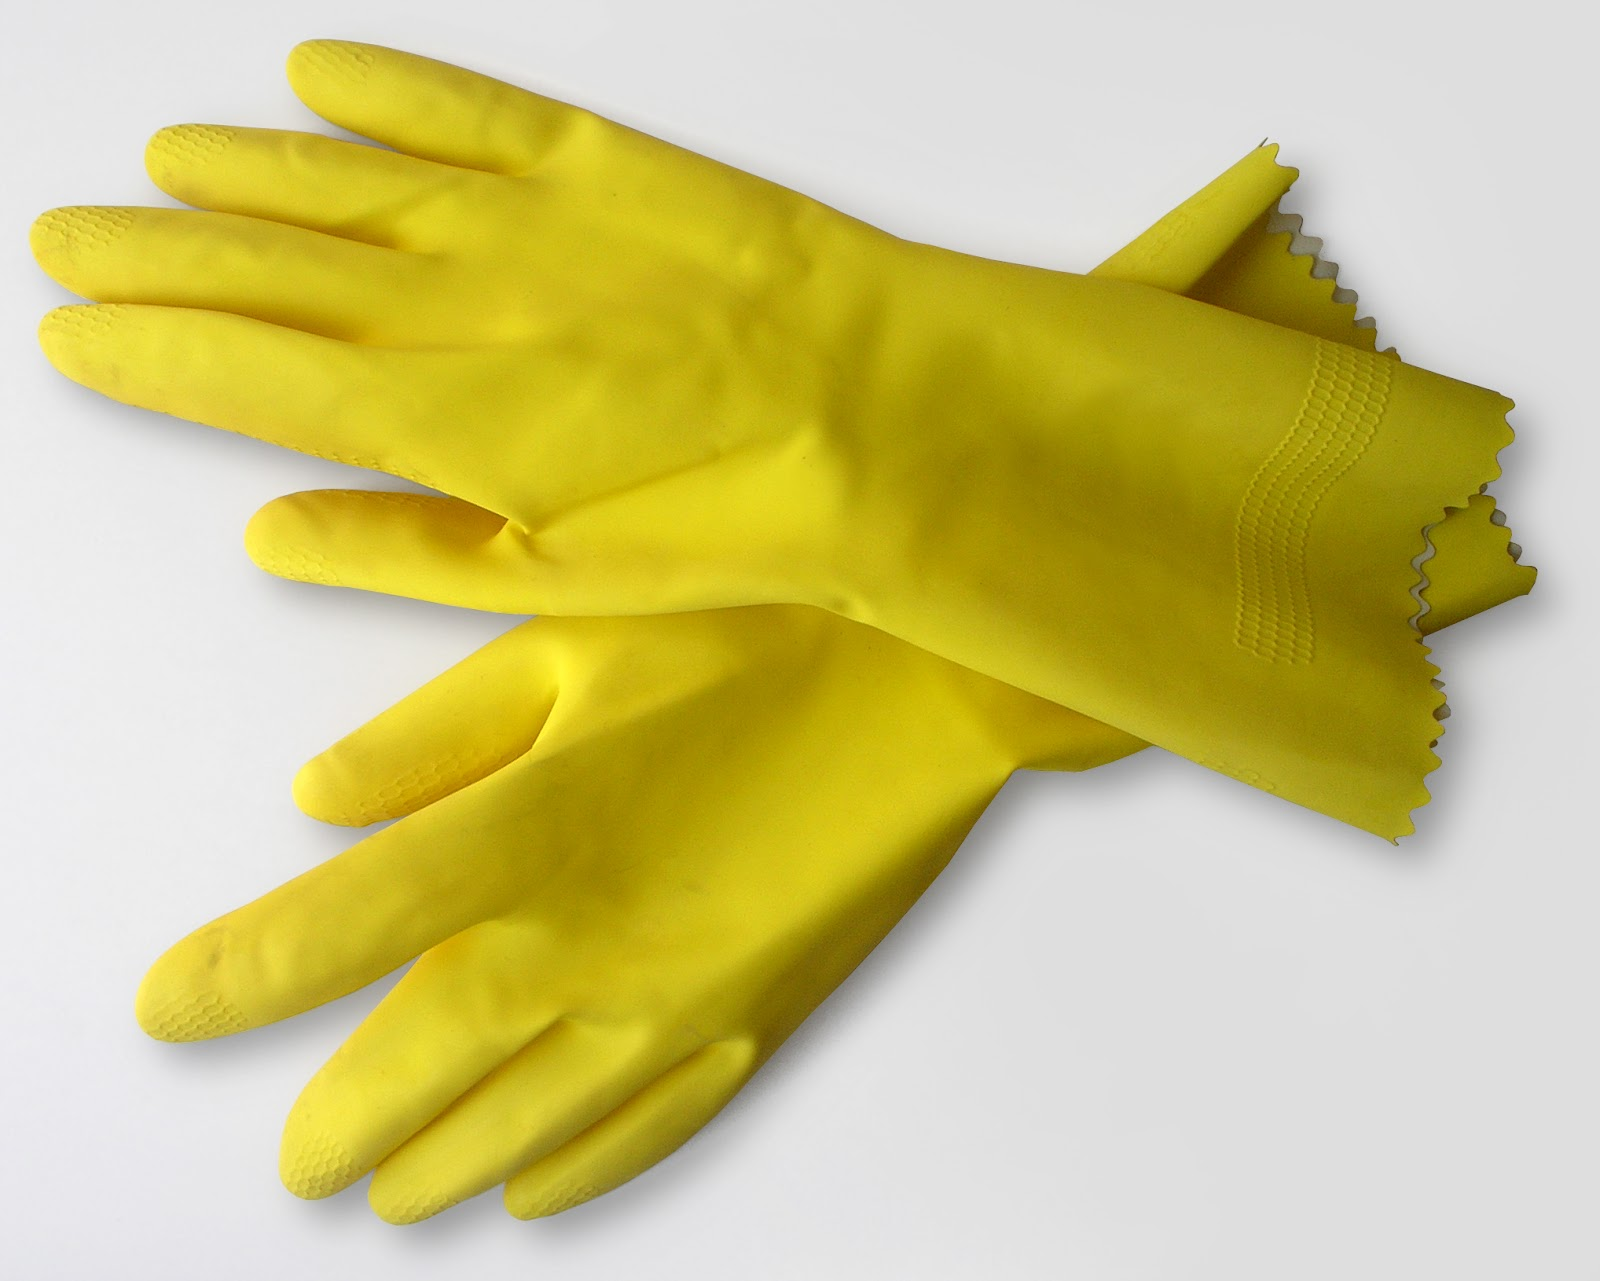 A yellow rubber gloves handjob for the pool boy 1